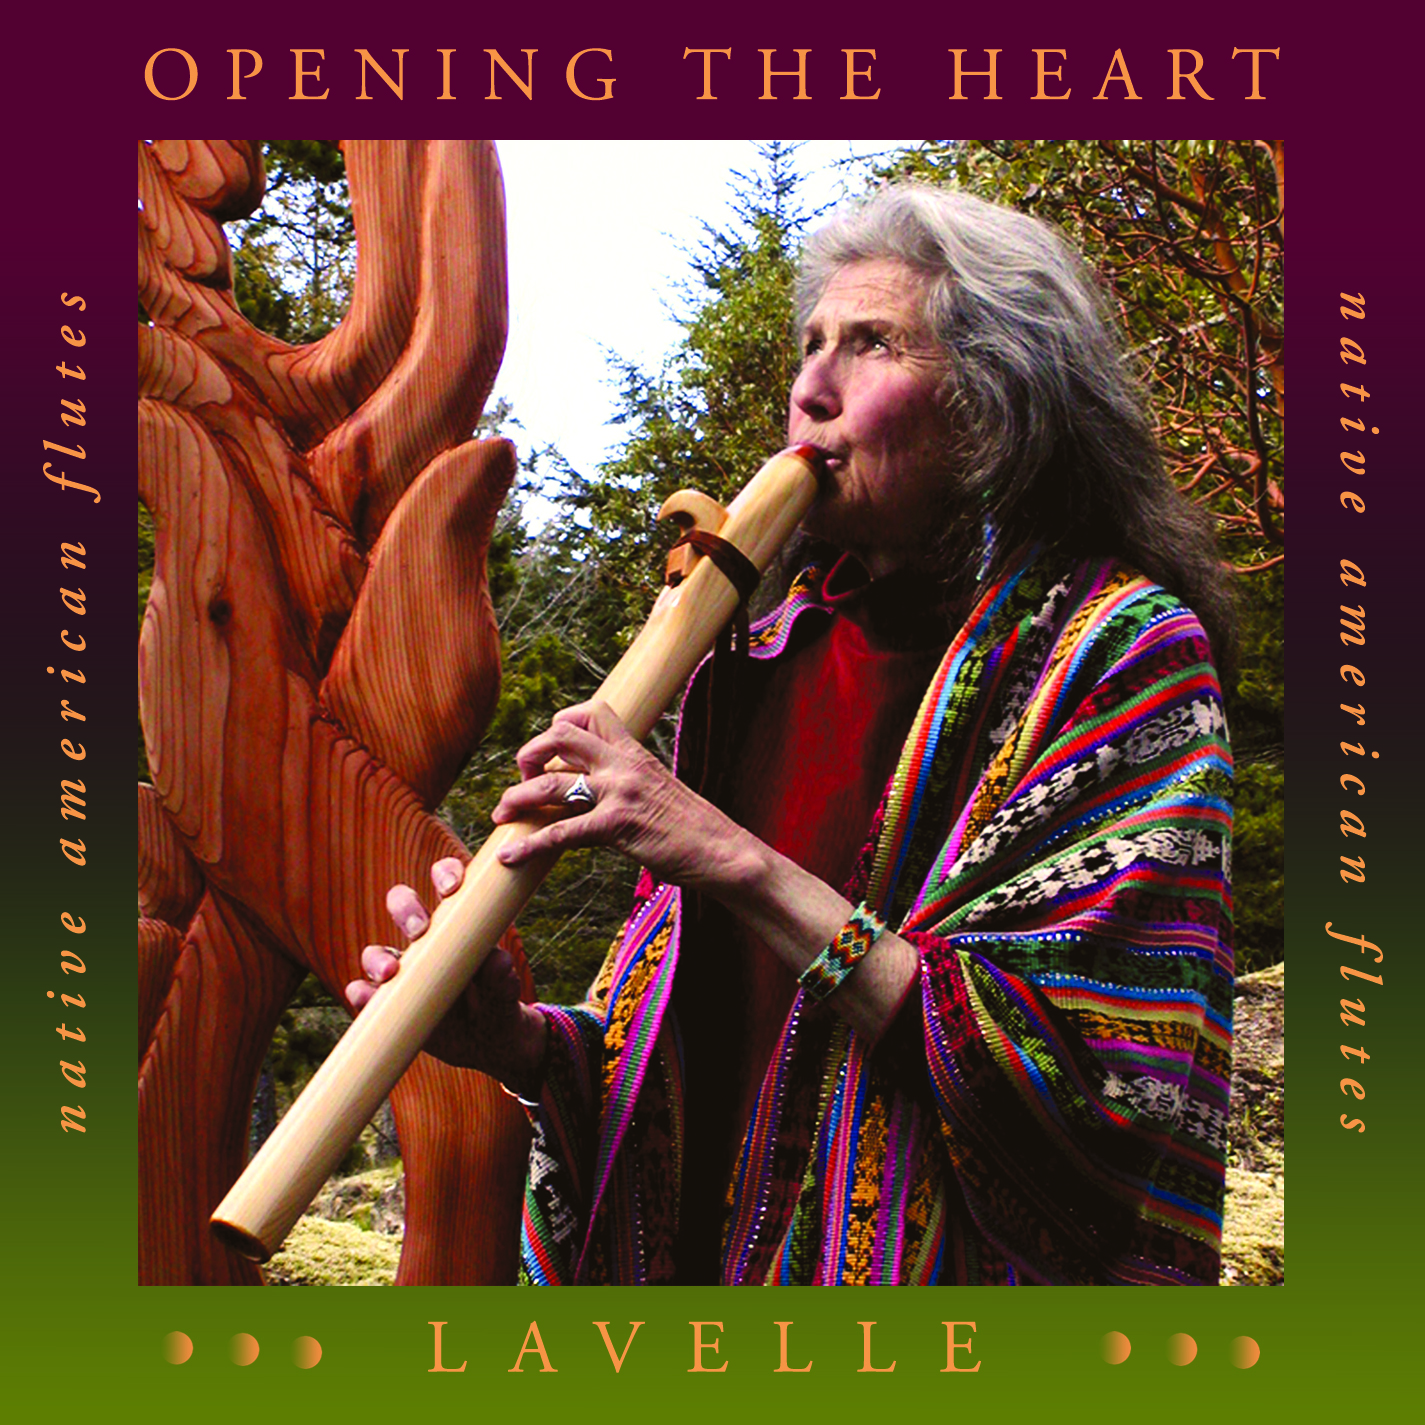 Native American Flute Music CD: Opening the Heart by Lavelle